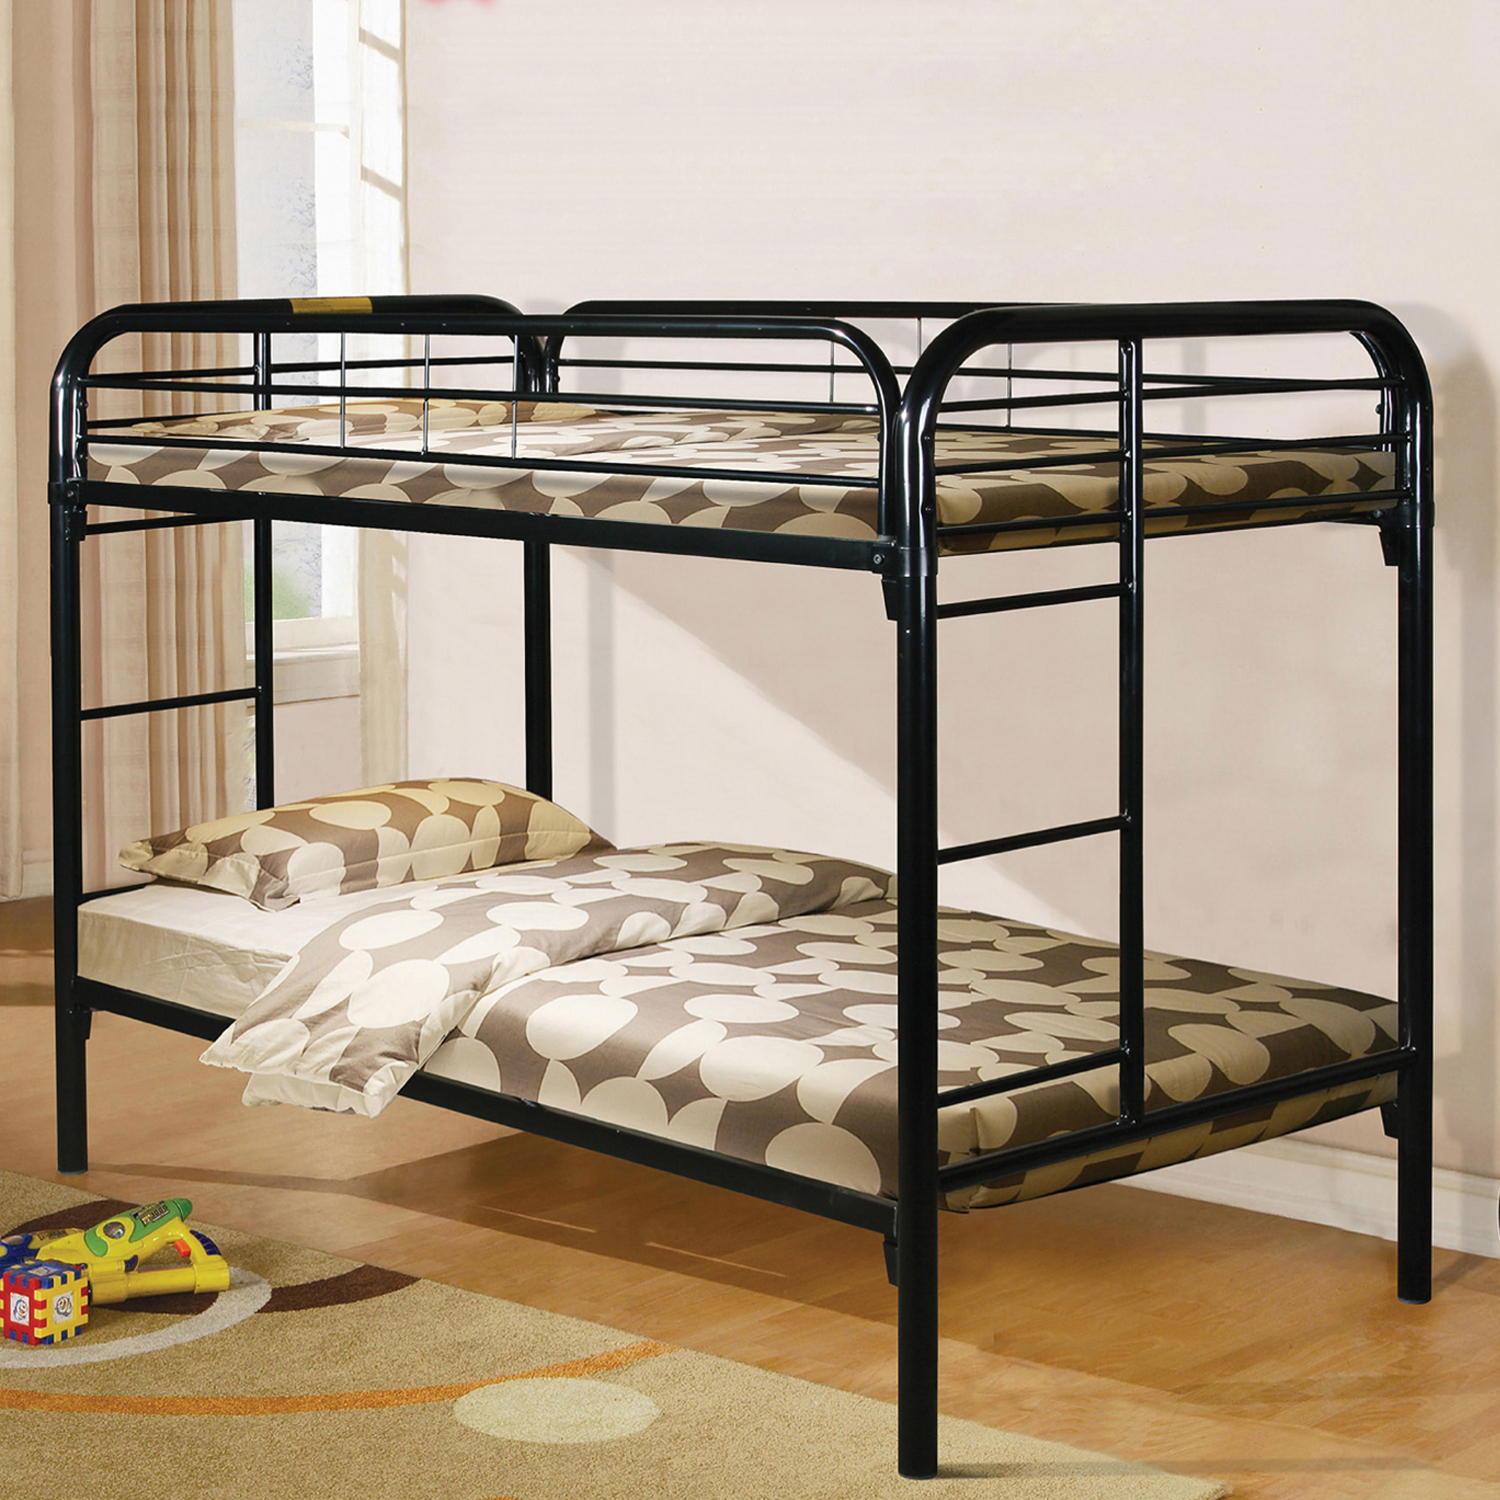 Home Source Black Twin Bunk Bed with Attached Ladders